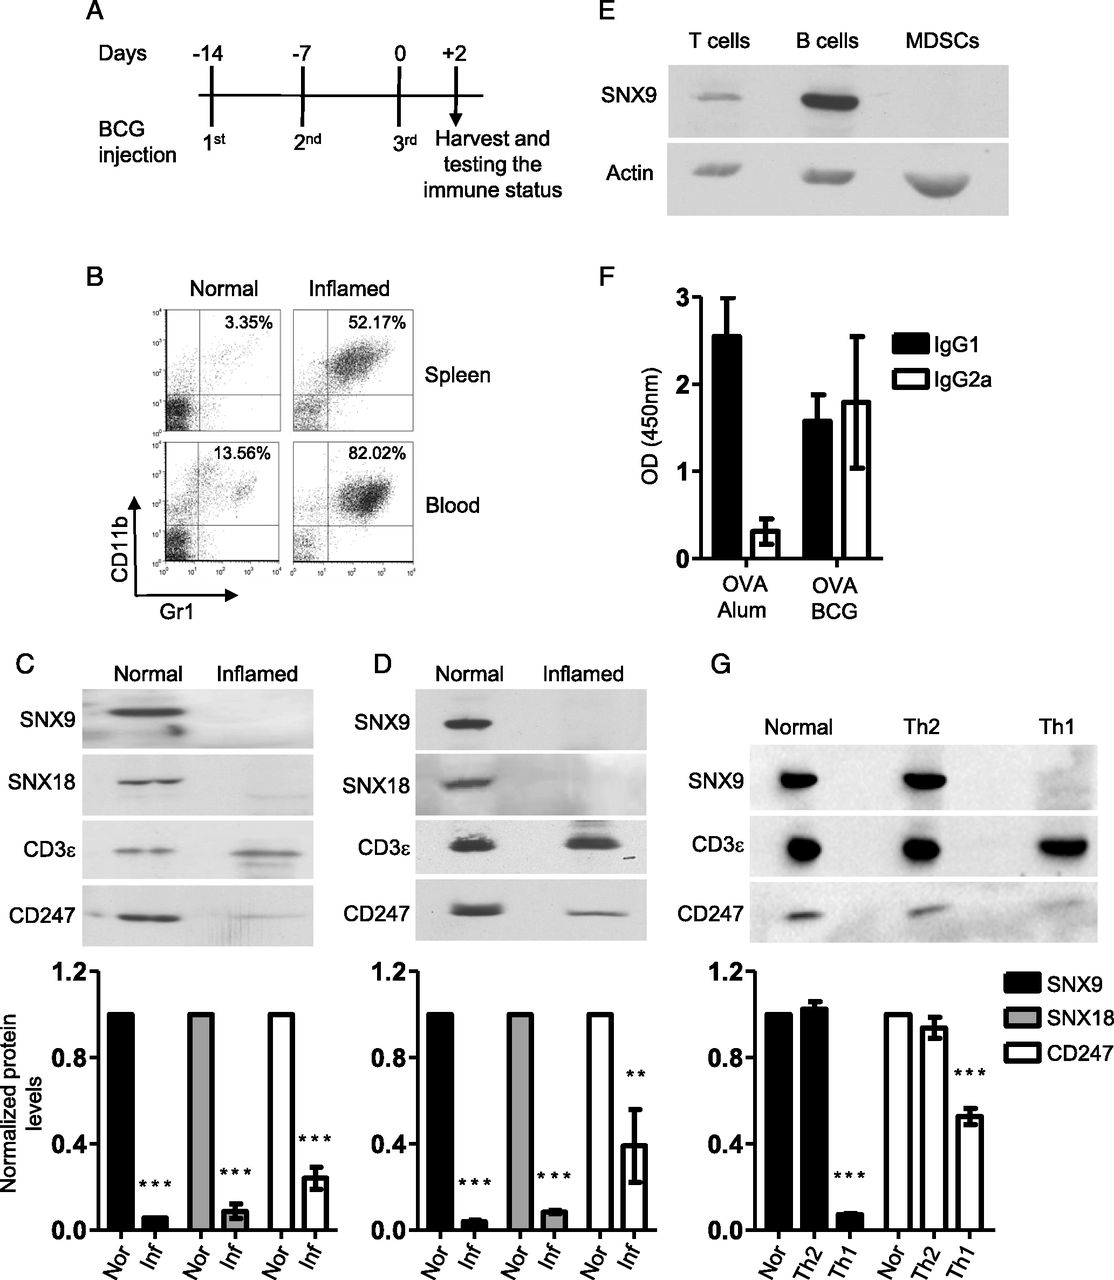 Impaired SNX9 Expression in Immune Cells during Chronic